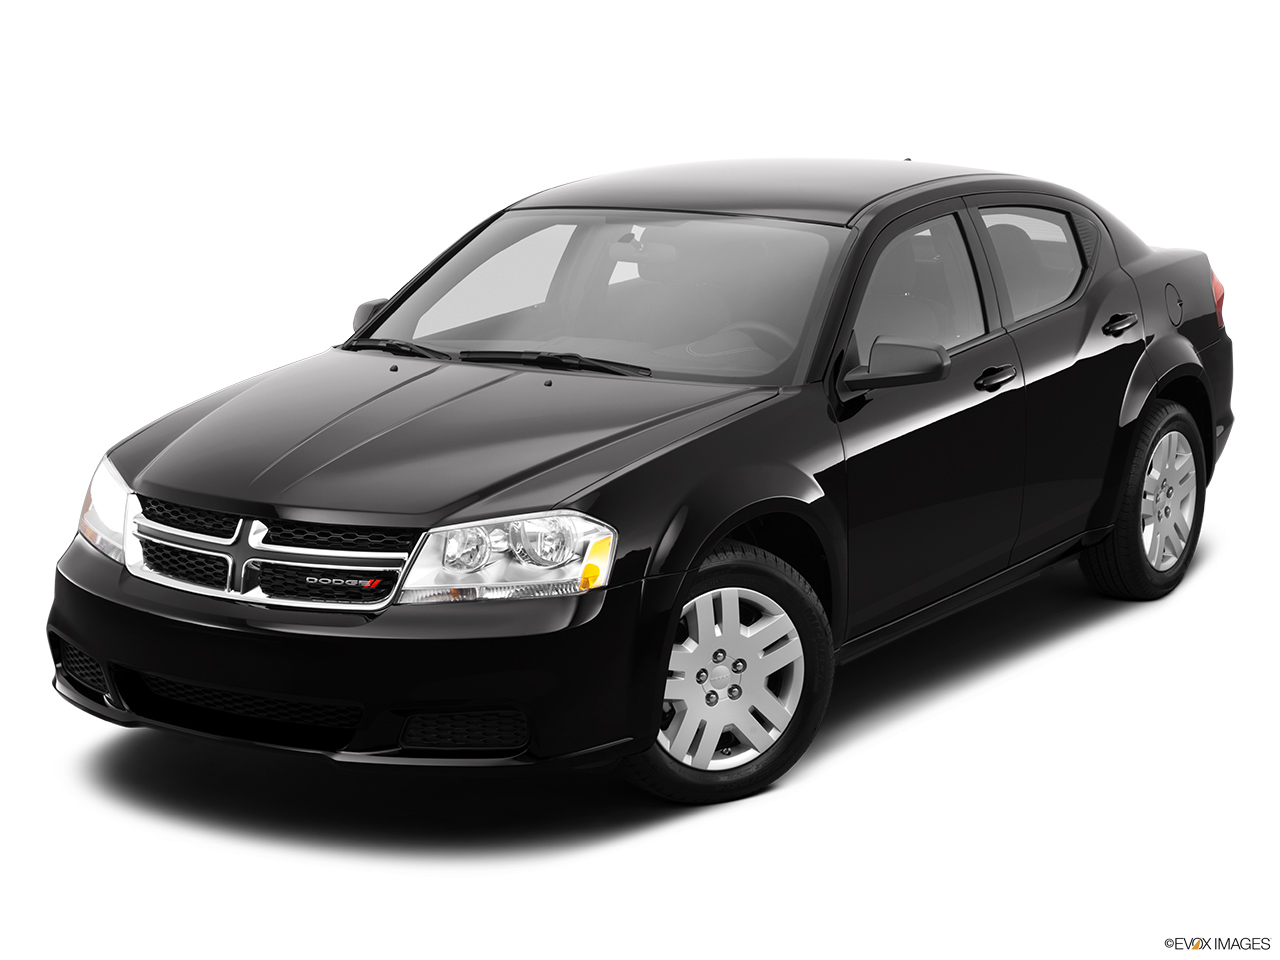 2014 dodge avenger sedan sxt. Black Bedroom Furniture Sets. Home Design Ideas